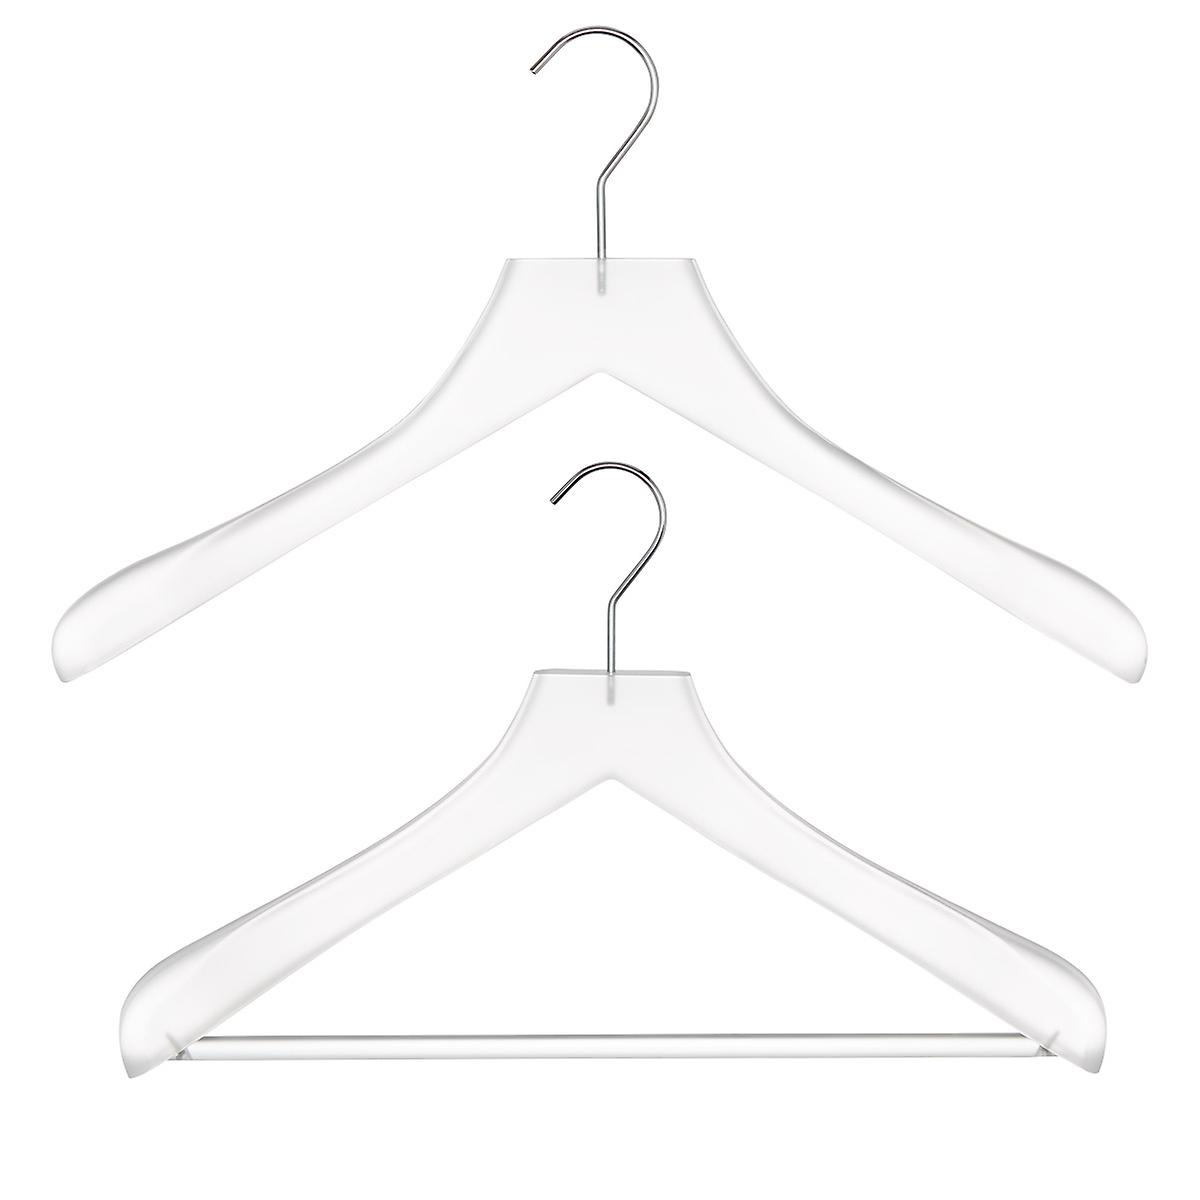 Frosted Acrylic Superior Coat Hangers